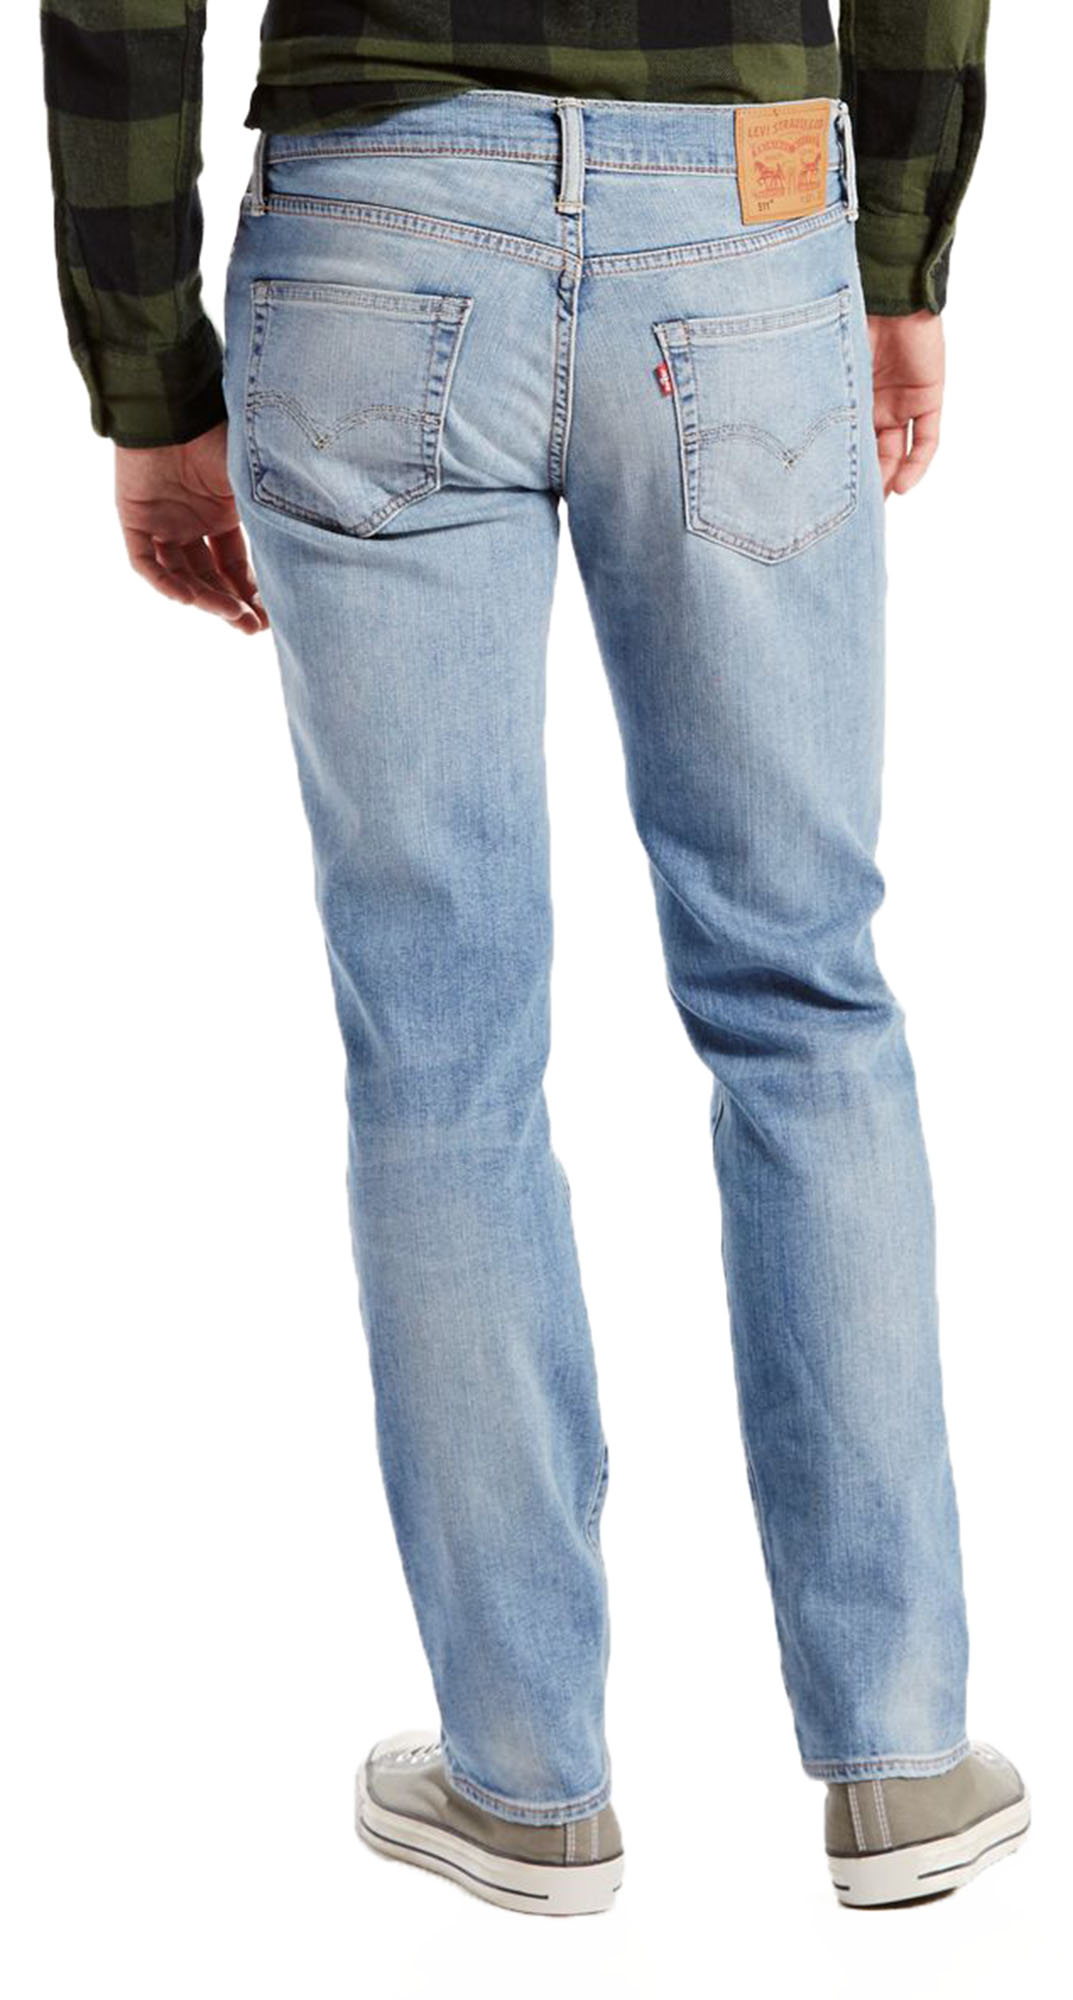 dc08d94954a Click on the Image to Enlarge. More Details. Levi's 511 Slim Fit men's Sun  Faded Stretch jeans.